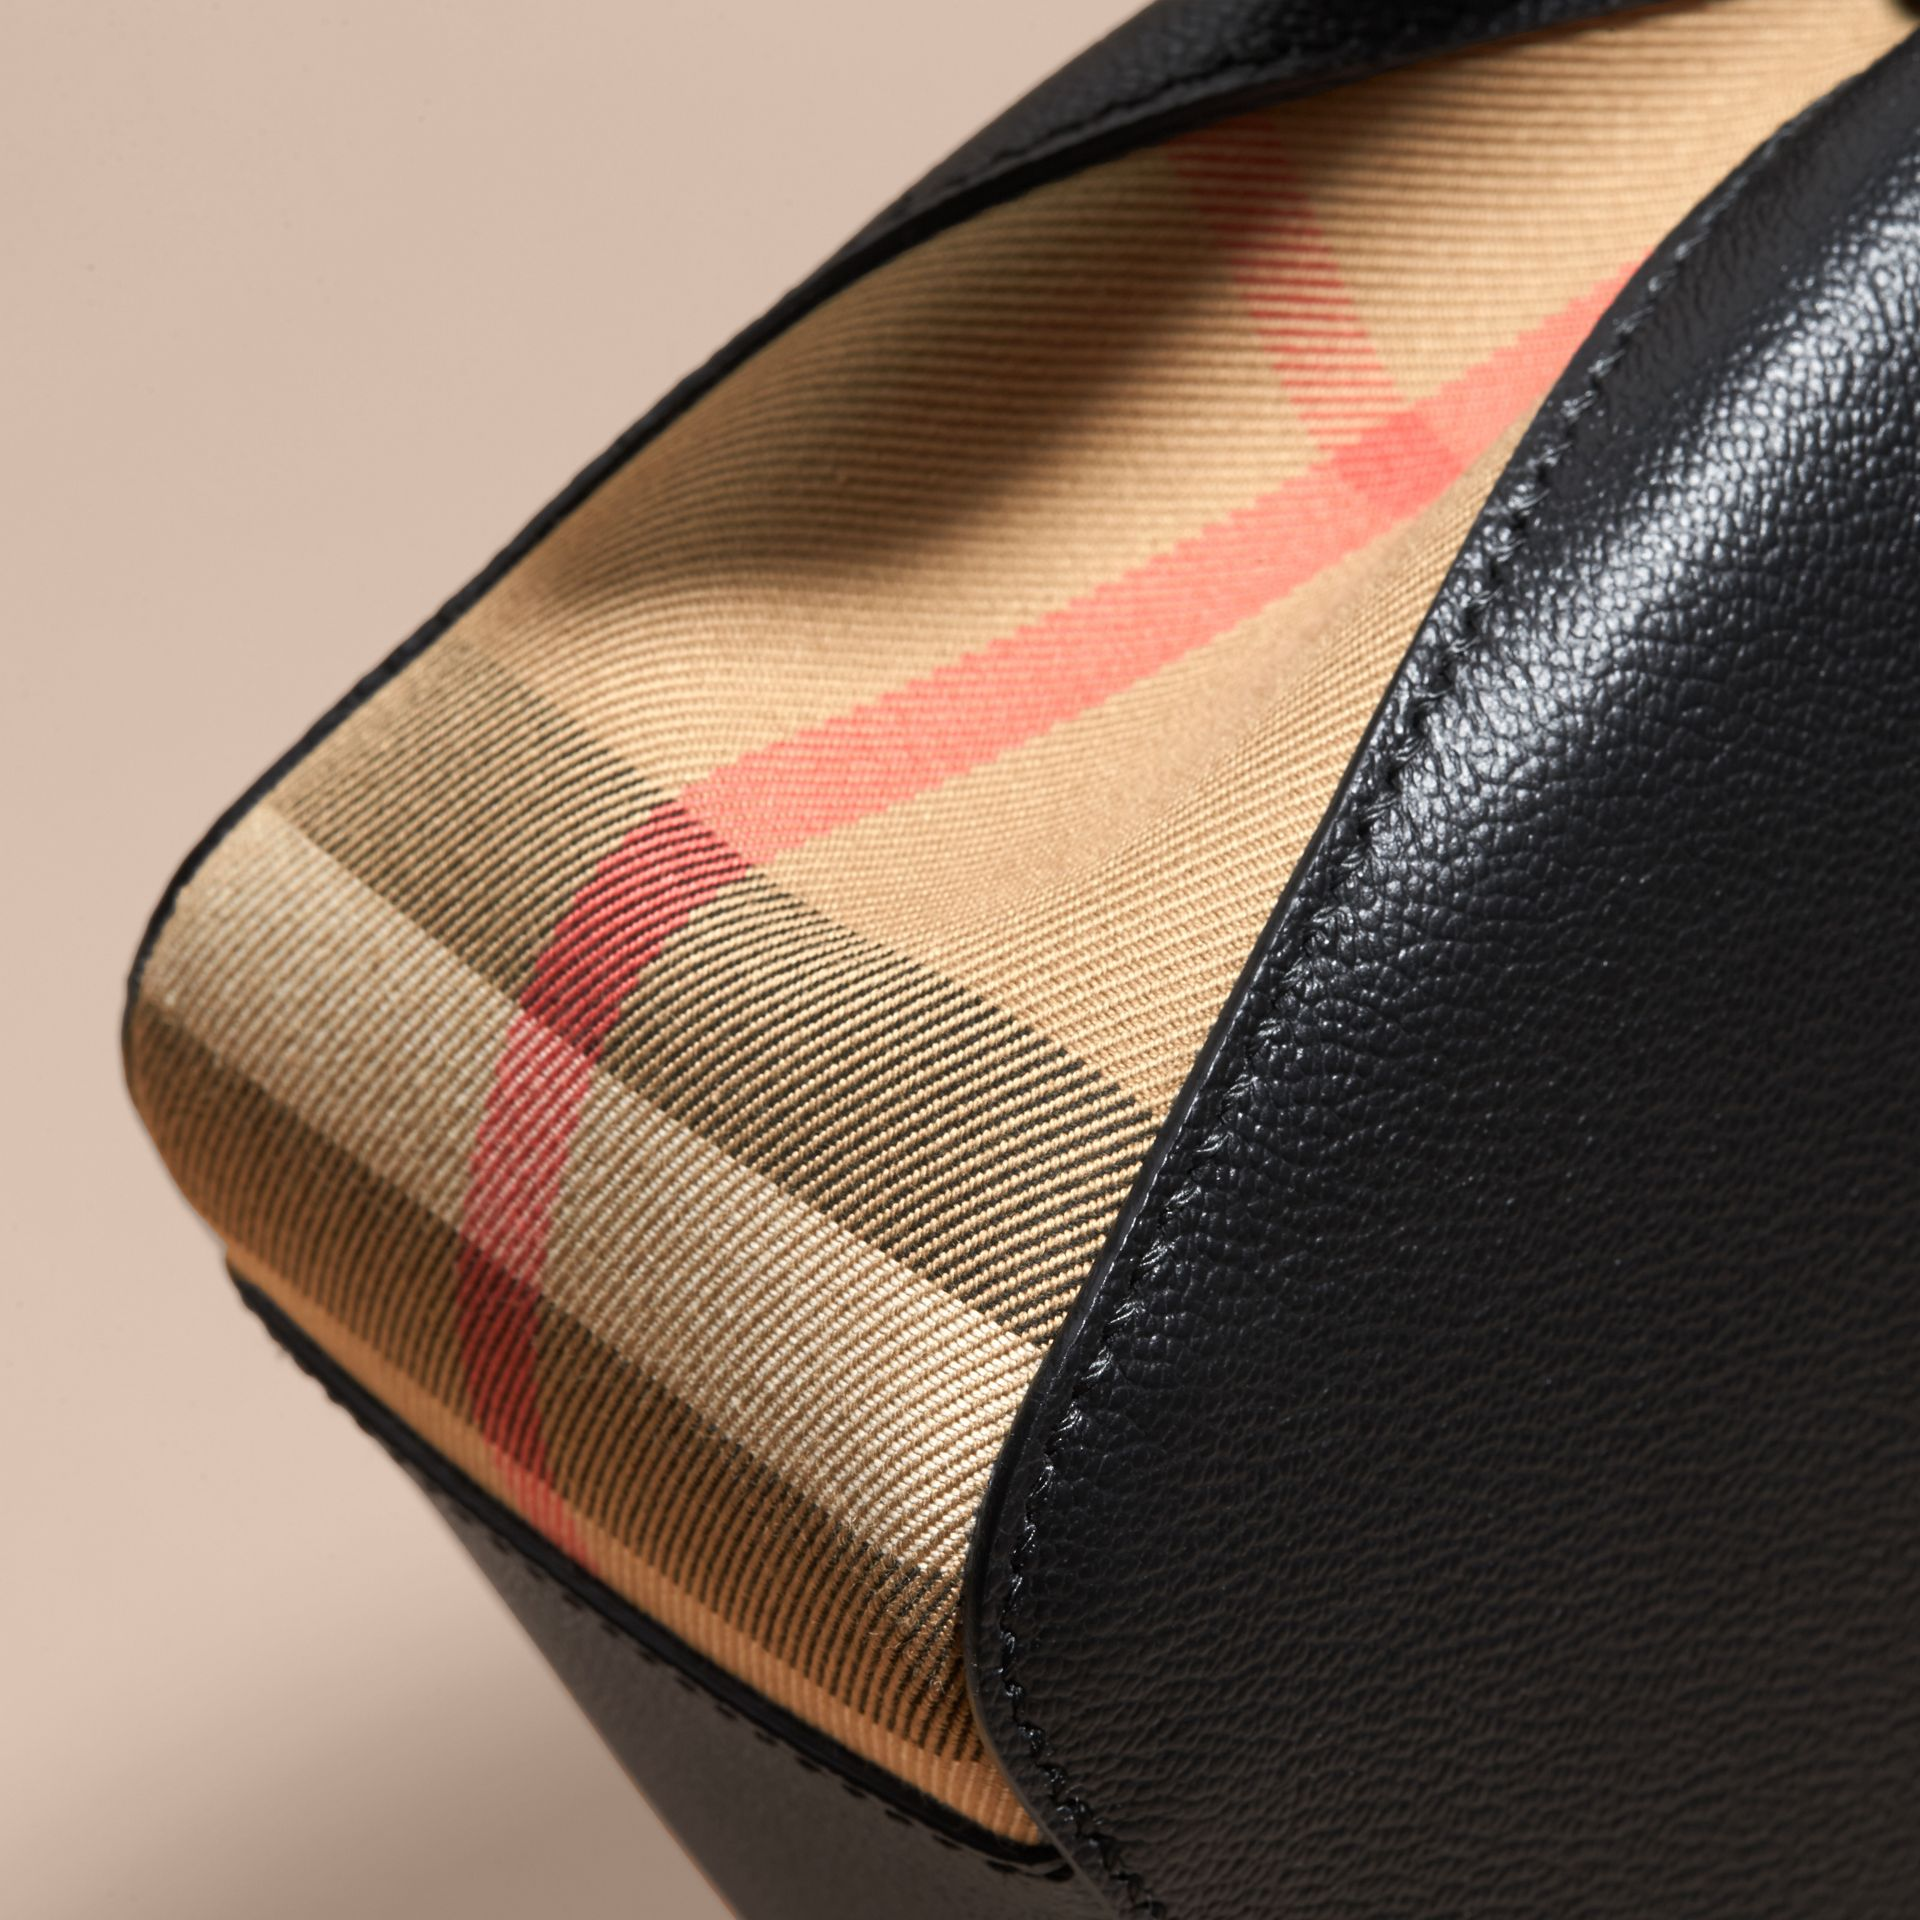 Buckle Detail Leather and House Check Crossbody Bag in Black - Women | Burberry - gallery image 6